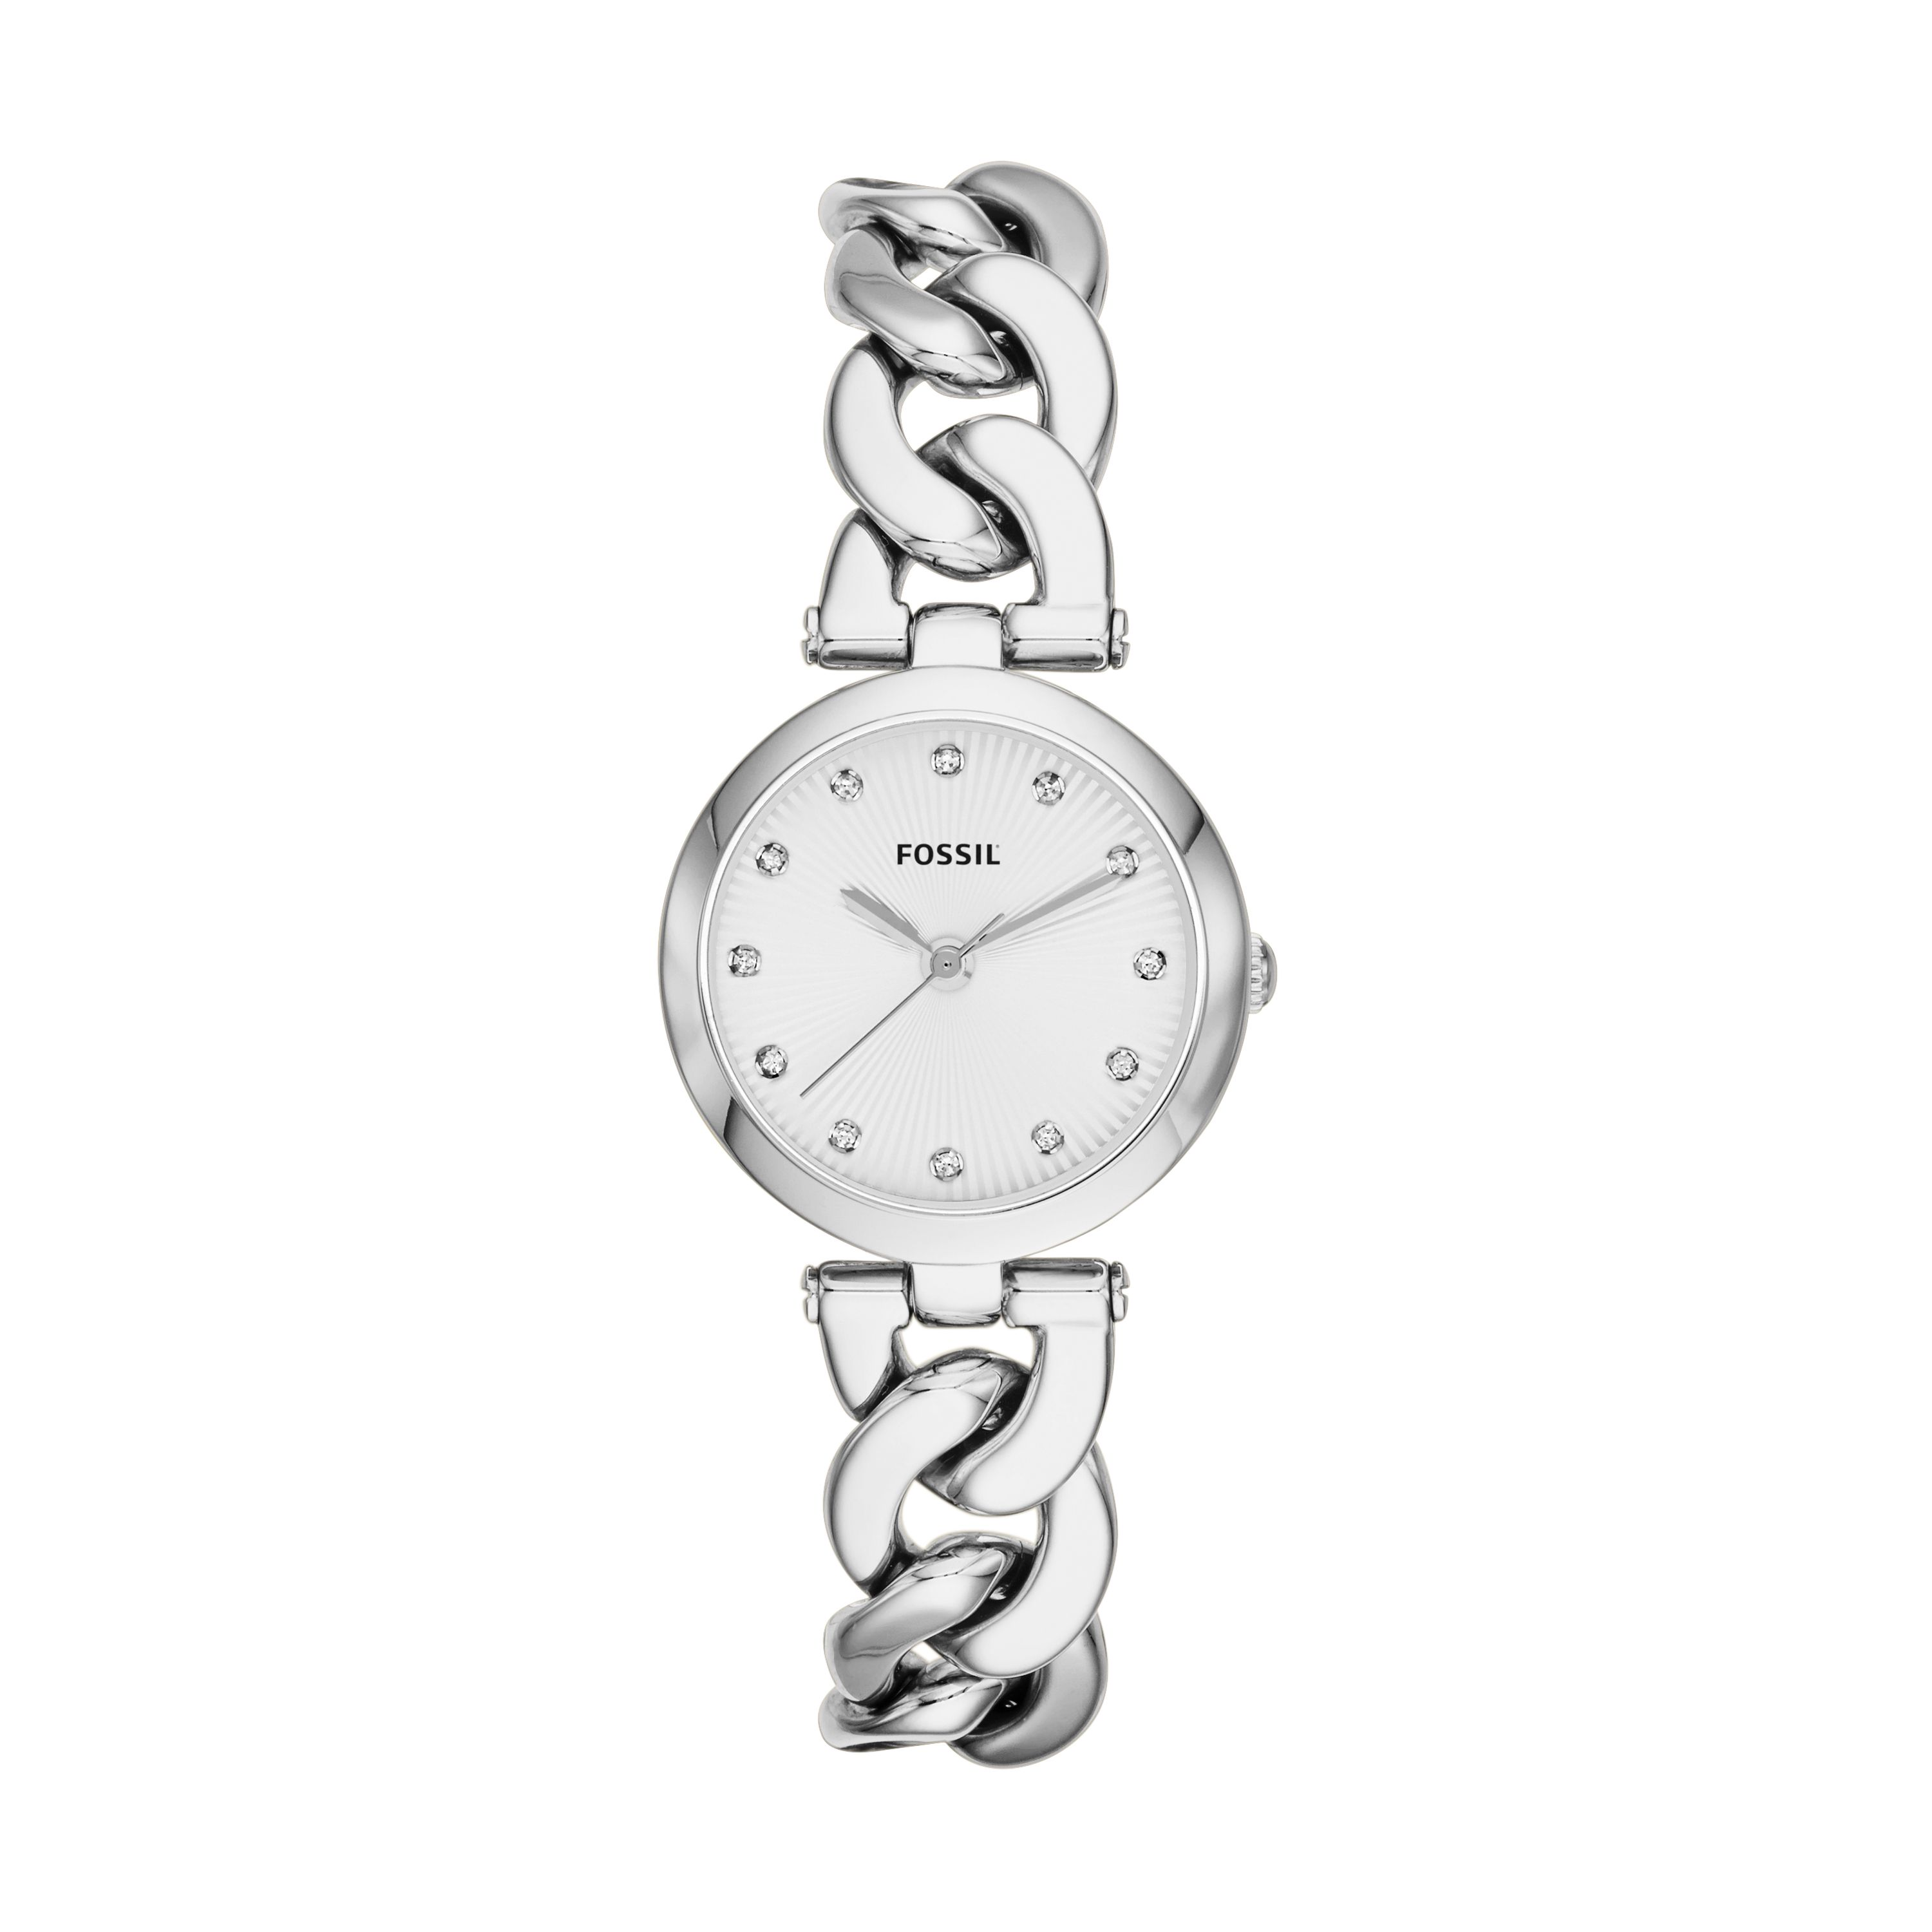 ES3390 Silver twist bracelet watch